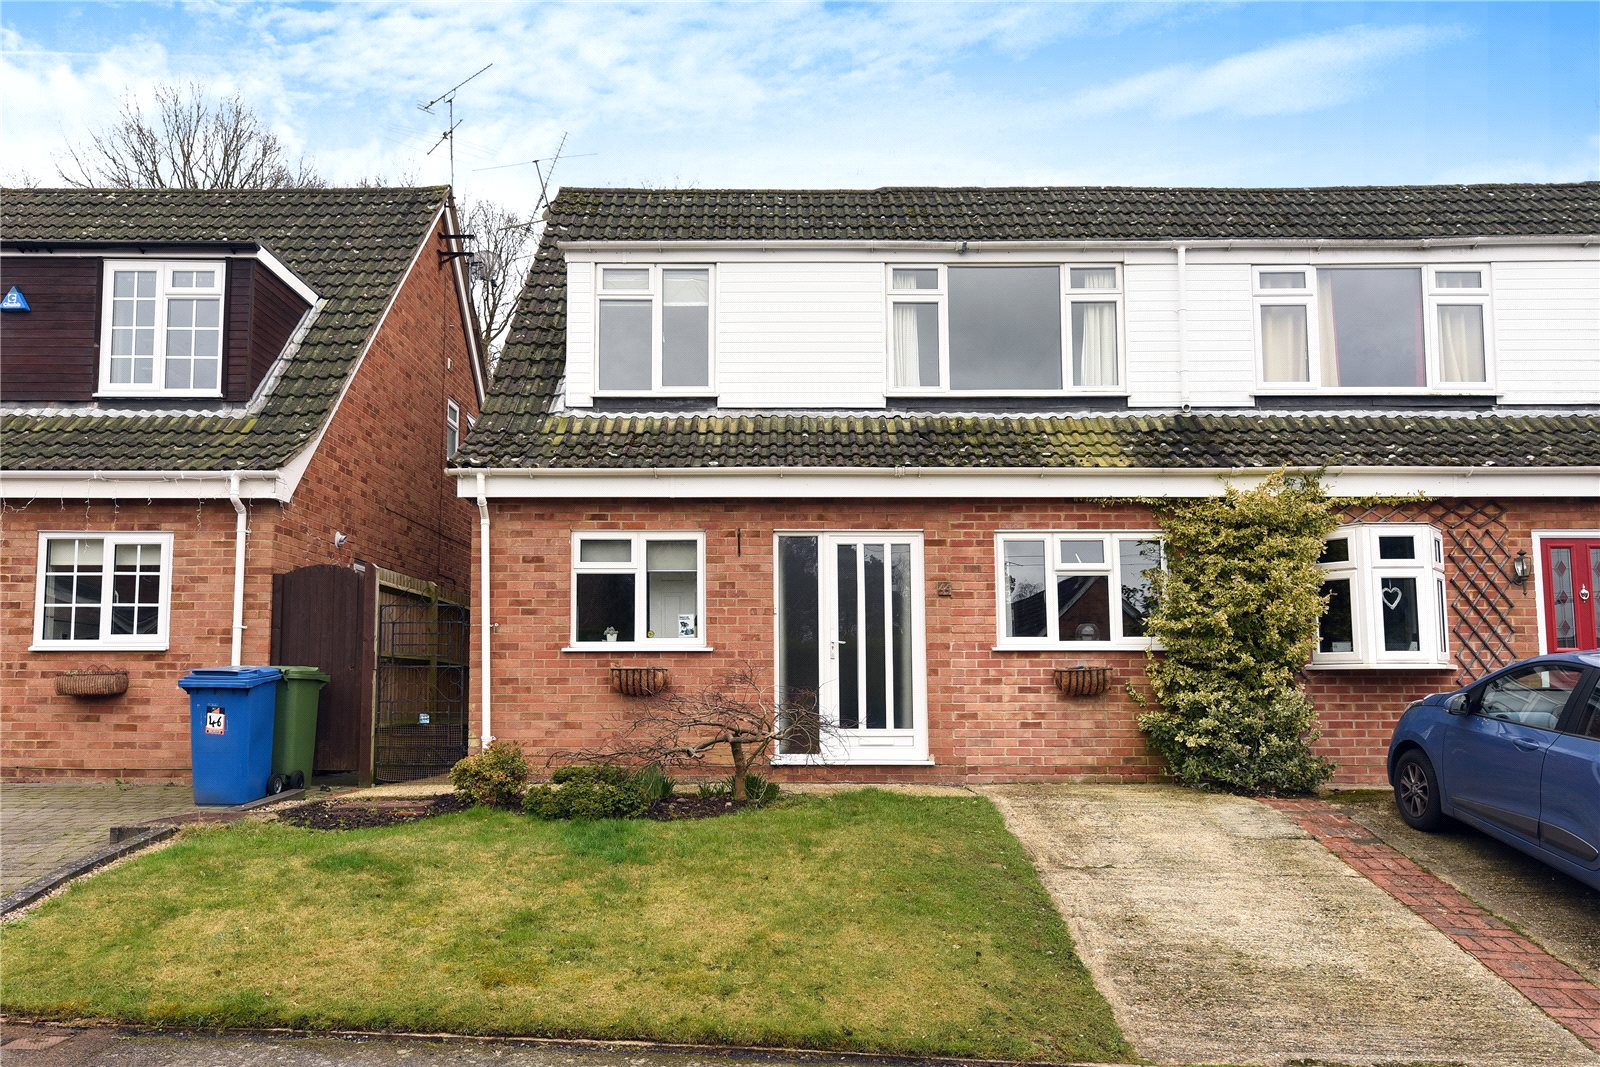 4 Bedrooms Semi Detached House for sale in Grampian Road, Sandhurst, Berkshire, GU47